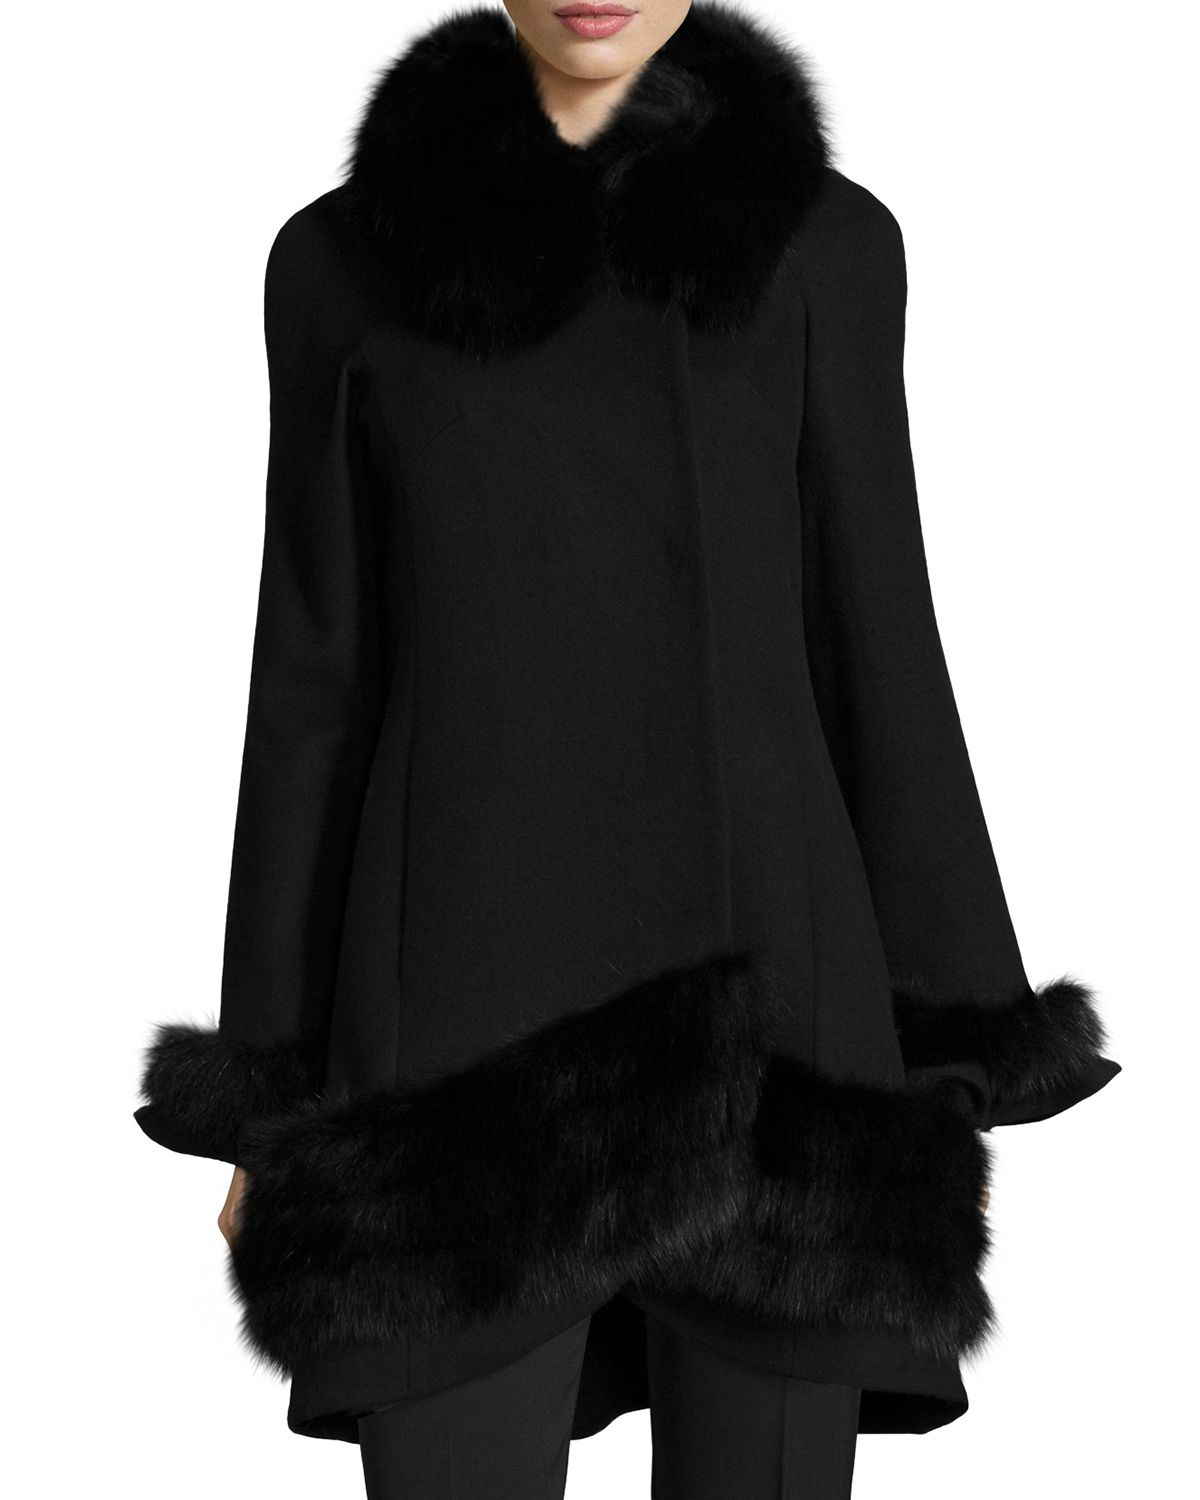 Fake Fur Trimmed On Cuffs Of Sweaters: Belle Fare Cashmere Swing Coat With Fur Cuffs